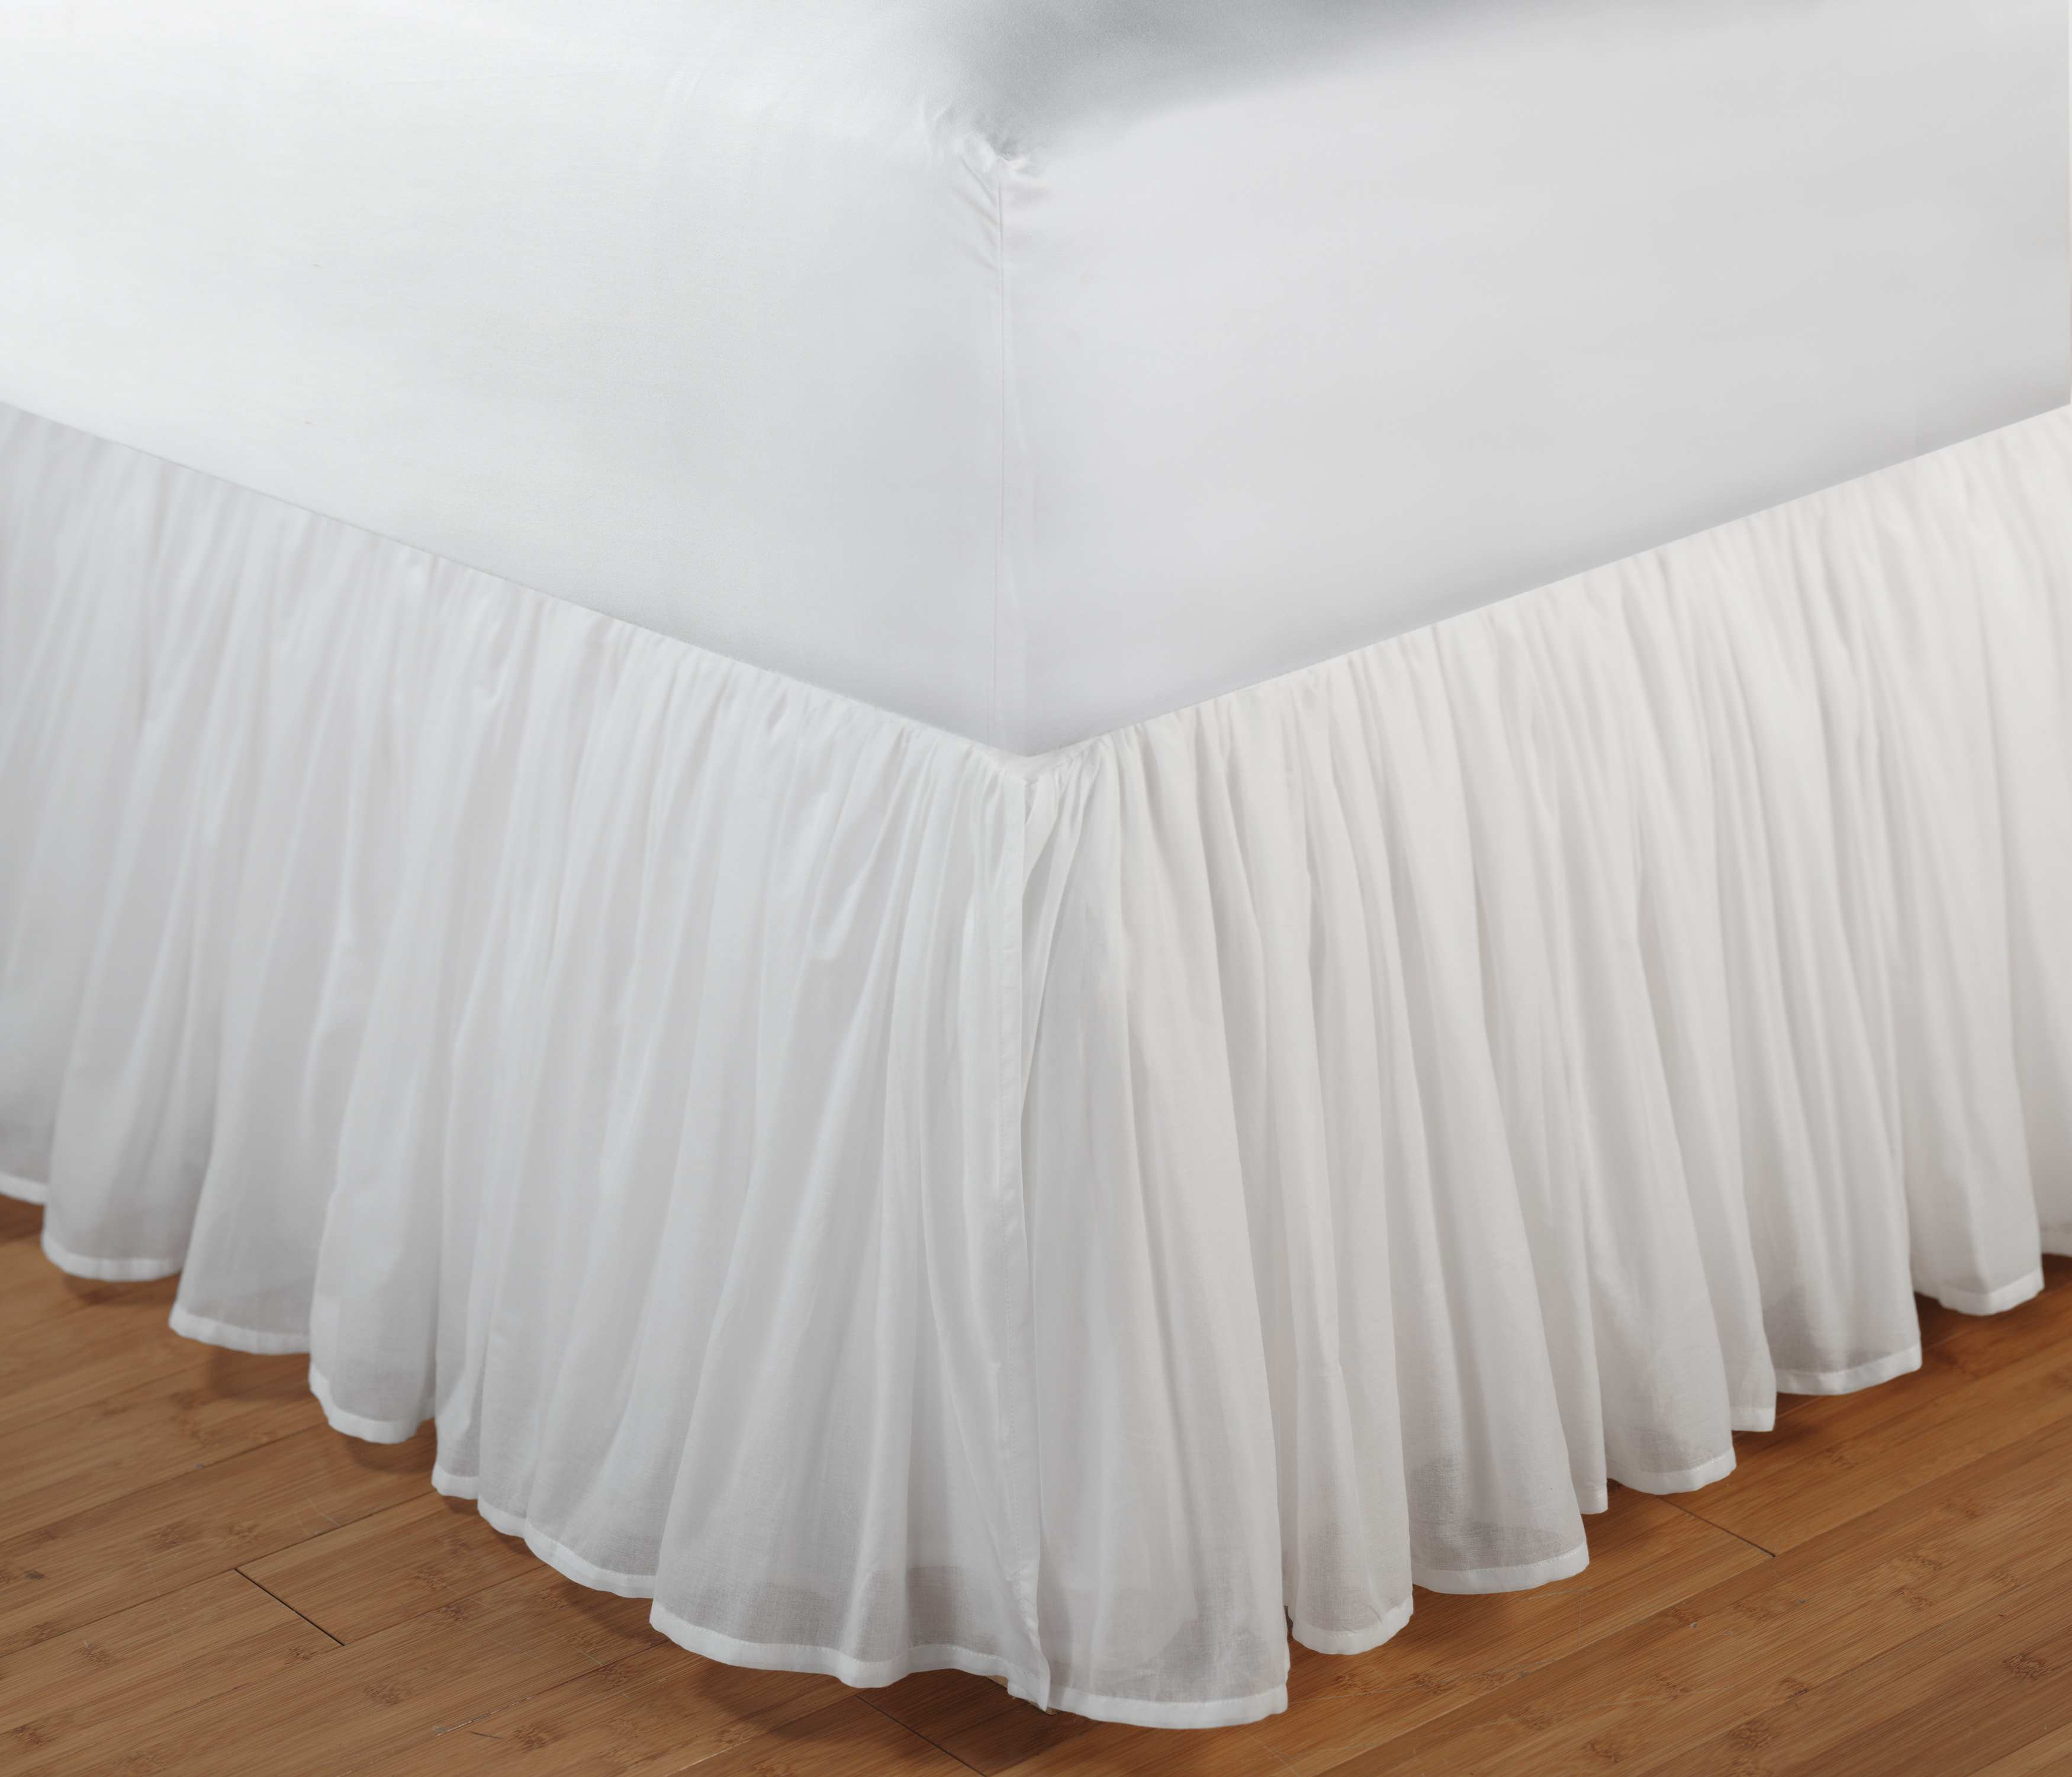 Cotton Voile White Bed Skirt 15 Full